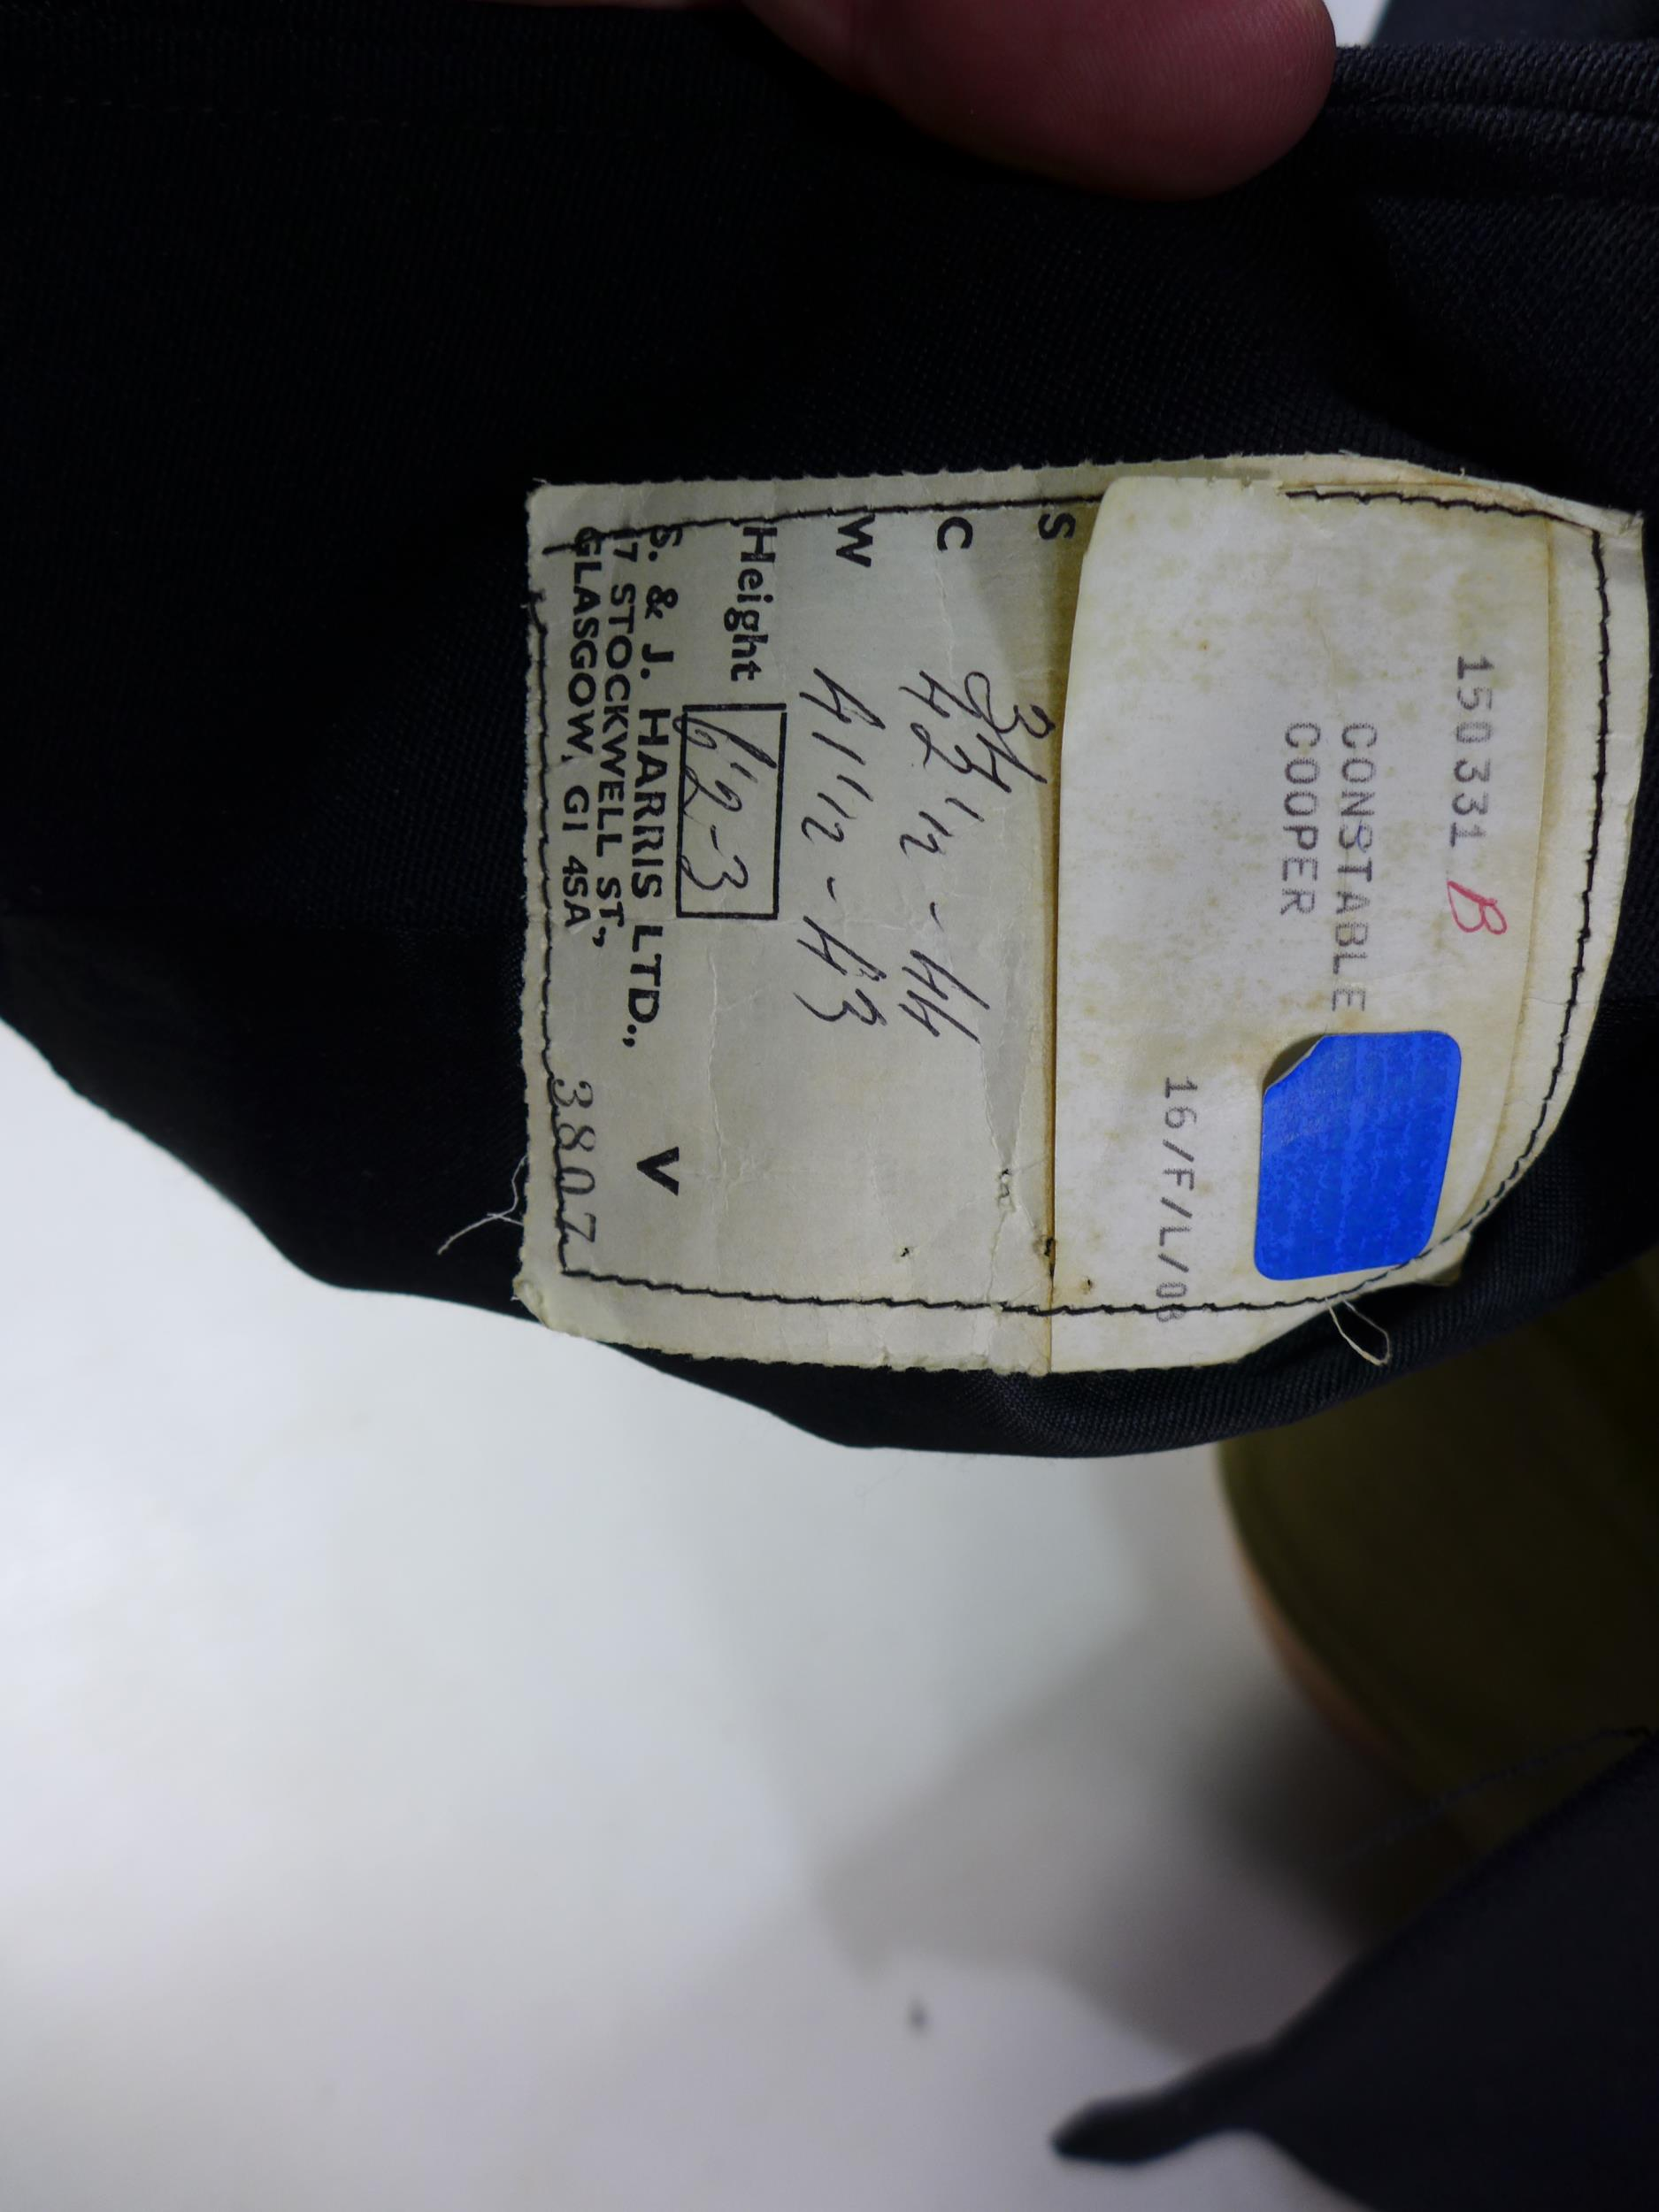 A SCOTTISH POLICE CONSTABLES UNIFORM BY HARRIS OF GLASGOW, SEE IMAGE FOR SIZE - Image 2 of 3